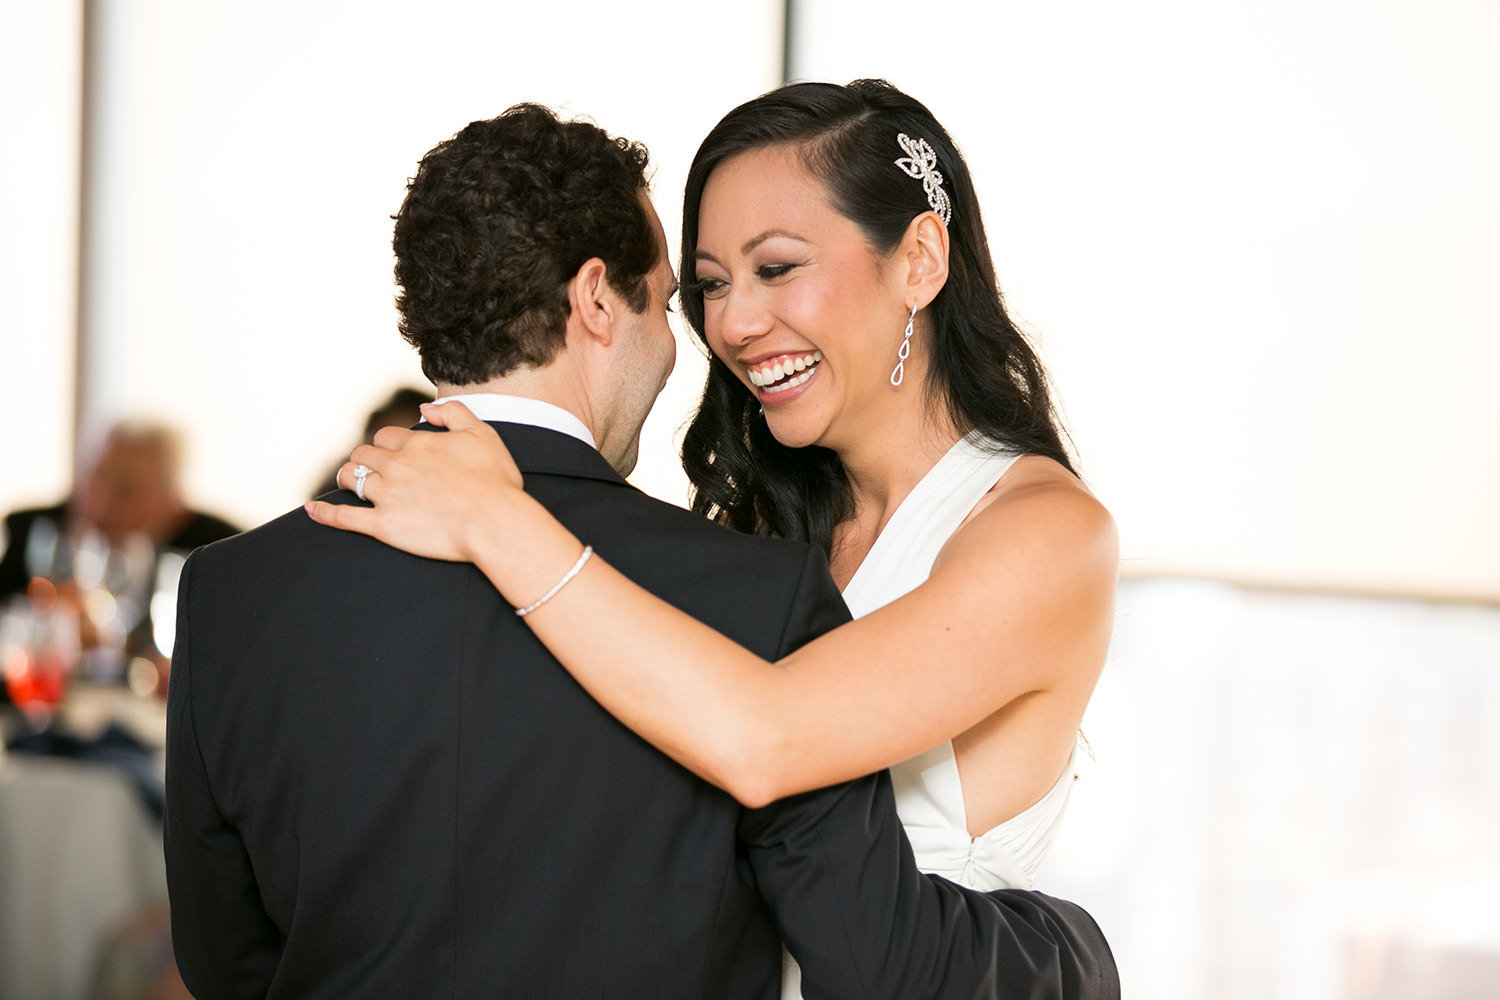 Sweet moment during the first dance at the University Club